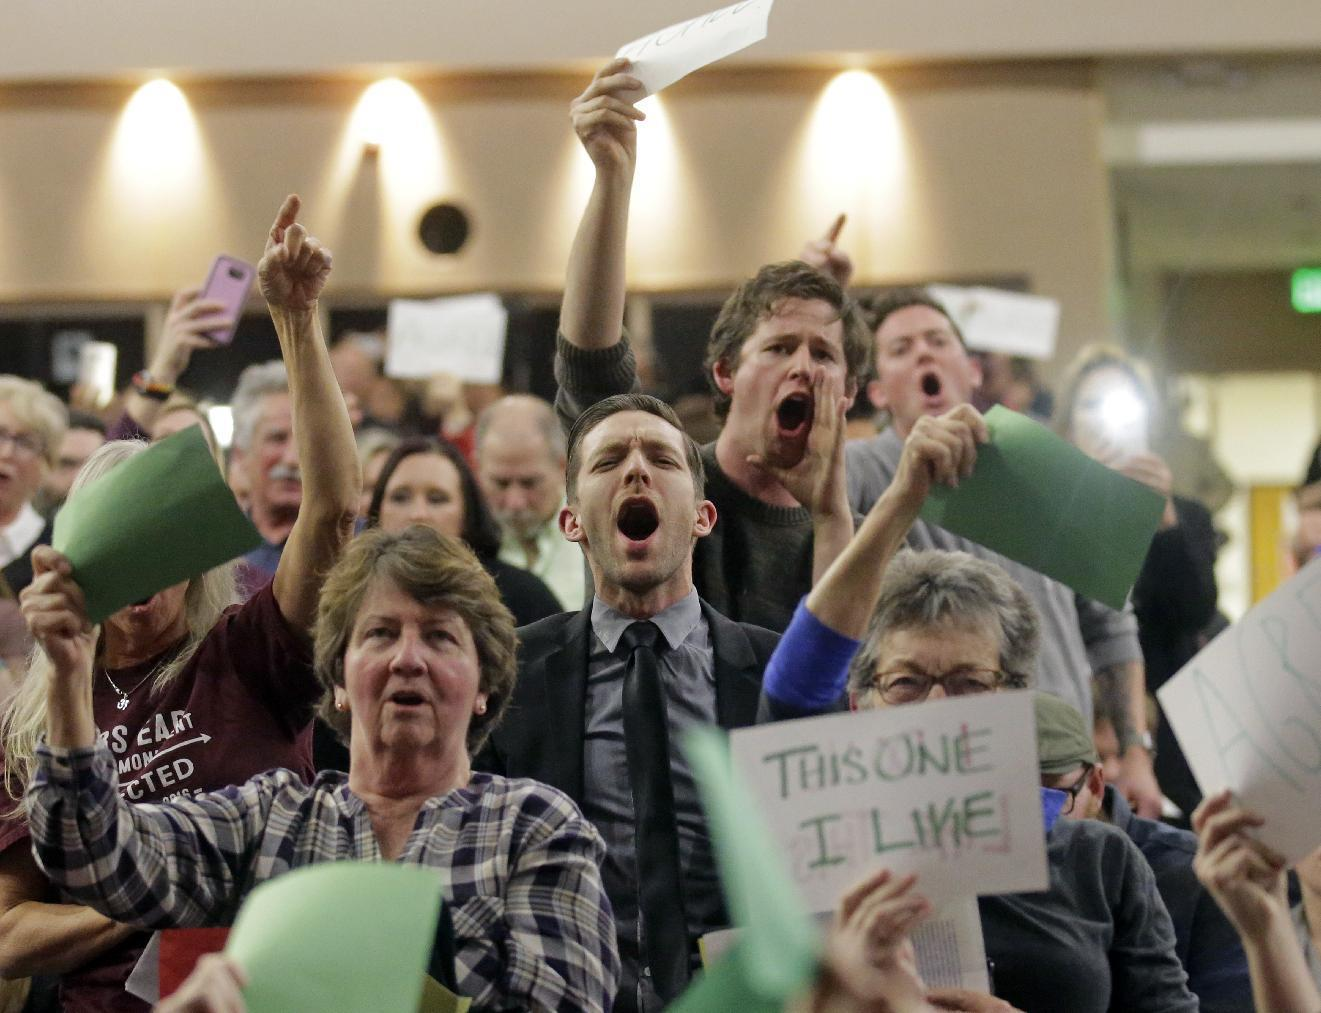 People shout to Rep. Jason Chaffetz during his town hall meeting at Brighton High School Thursday, Feb. 9, 2017, in Cottonwood Heights, Utah. Hundreds of people lined up early for a town hall with Chaffetz on Thursday evening, many holding signs criticizing the congressman's push to repeal the newly-named Bears Ears National Monument in southern Utah. (AP Photo/Rick Bowmer)